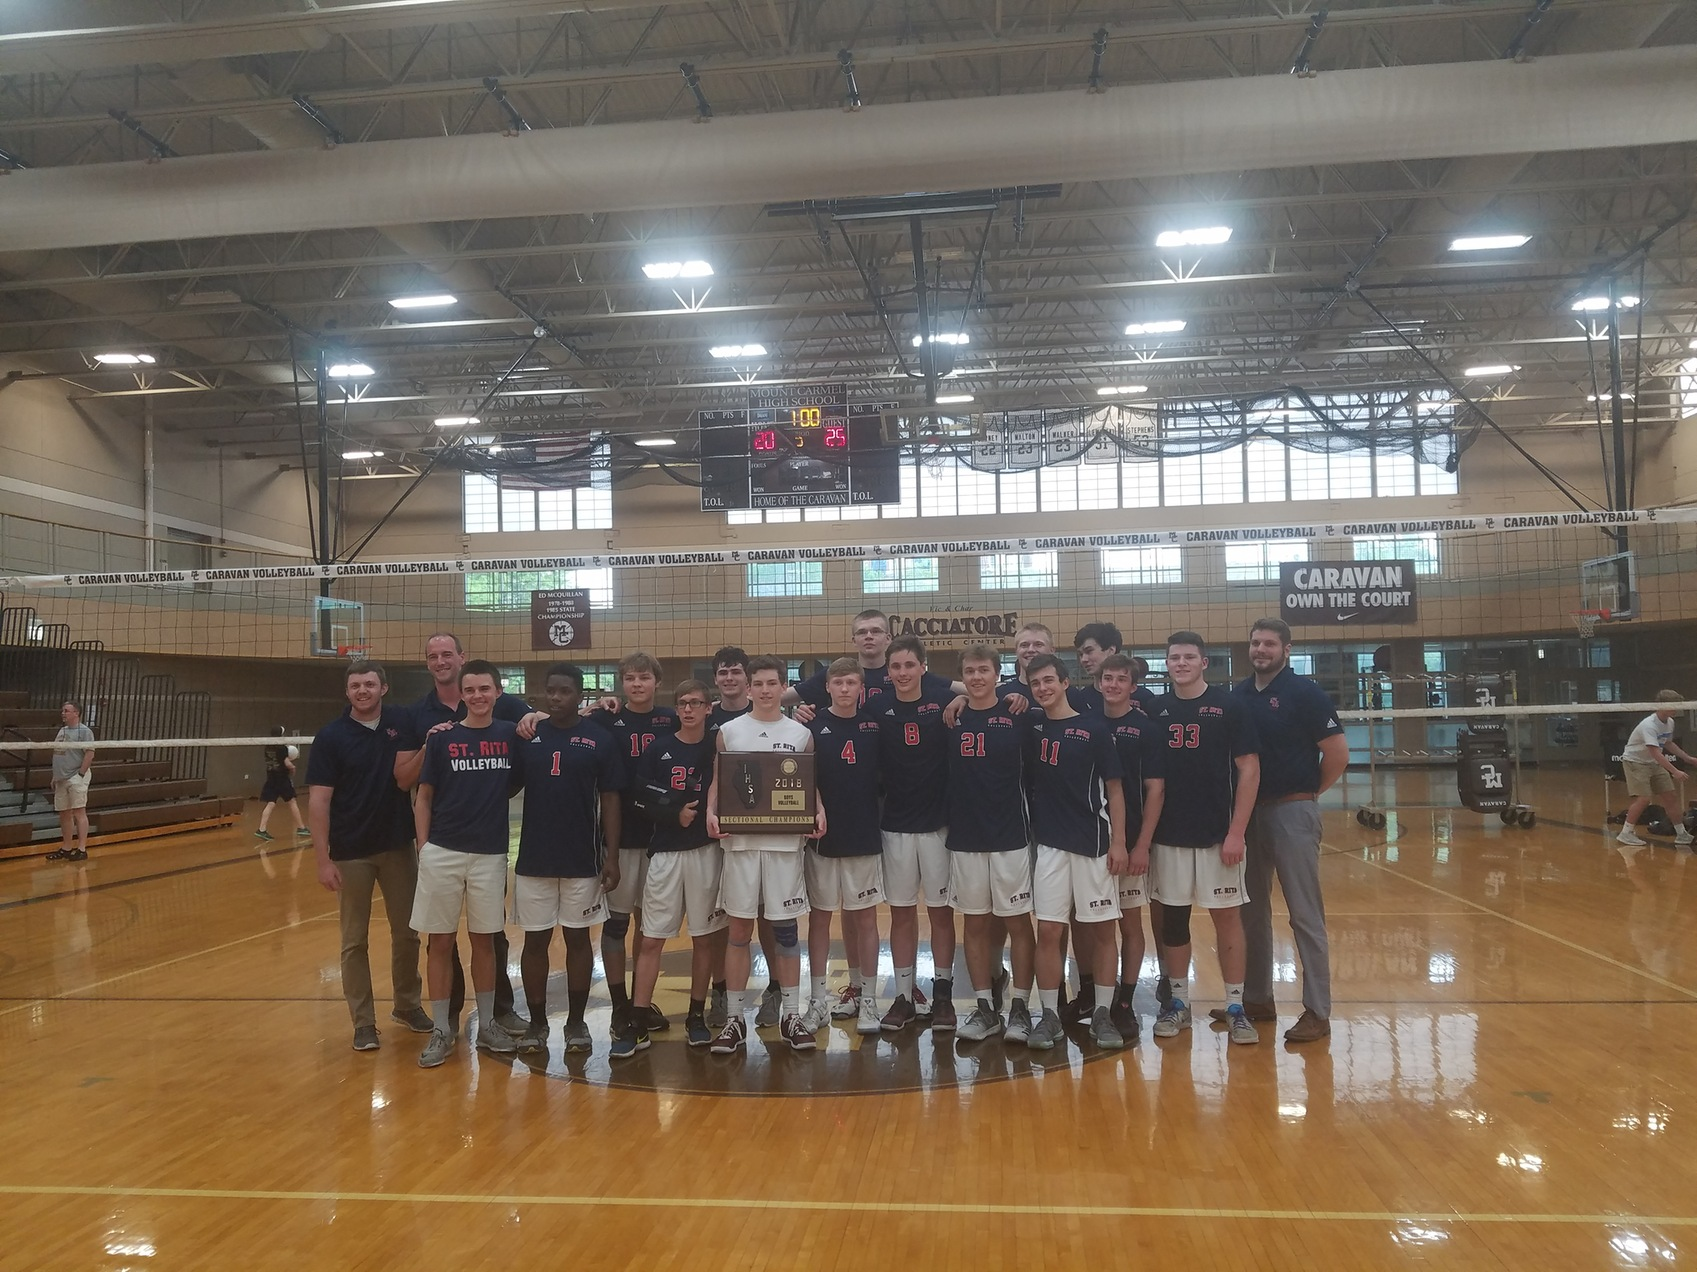 Congrats to our Sectional Champions! Volleyball is headed to State for the 1st time since 2012!